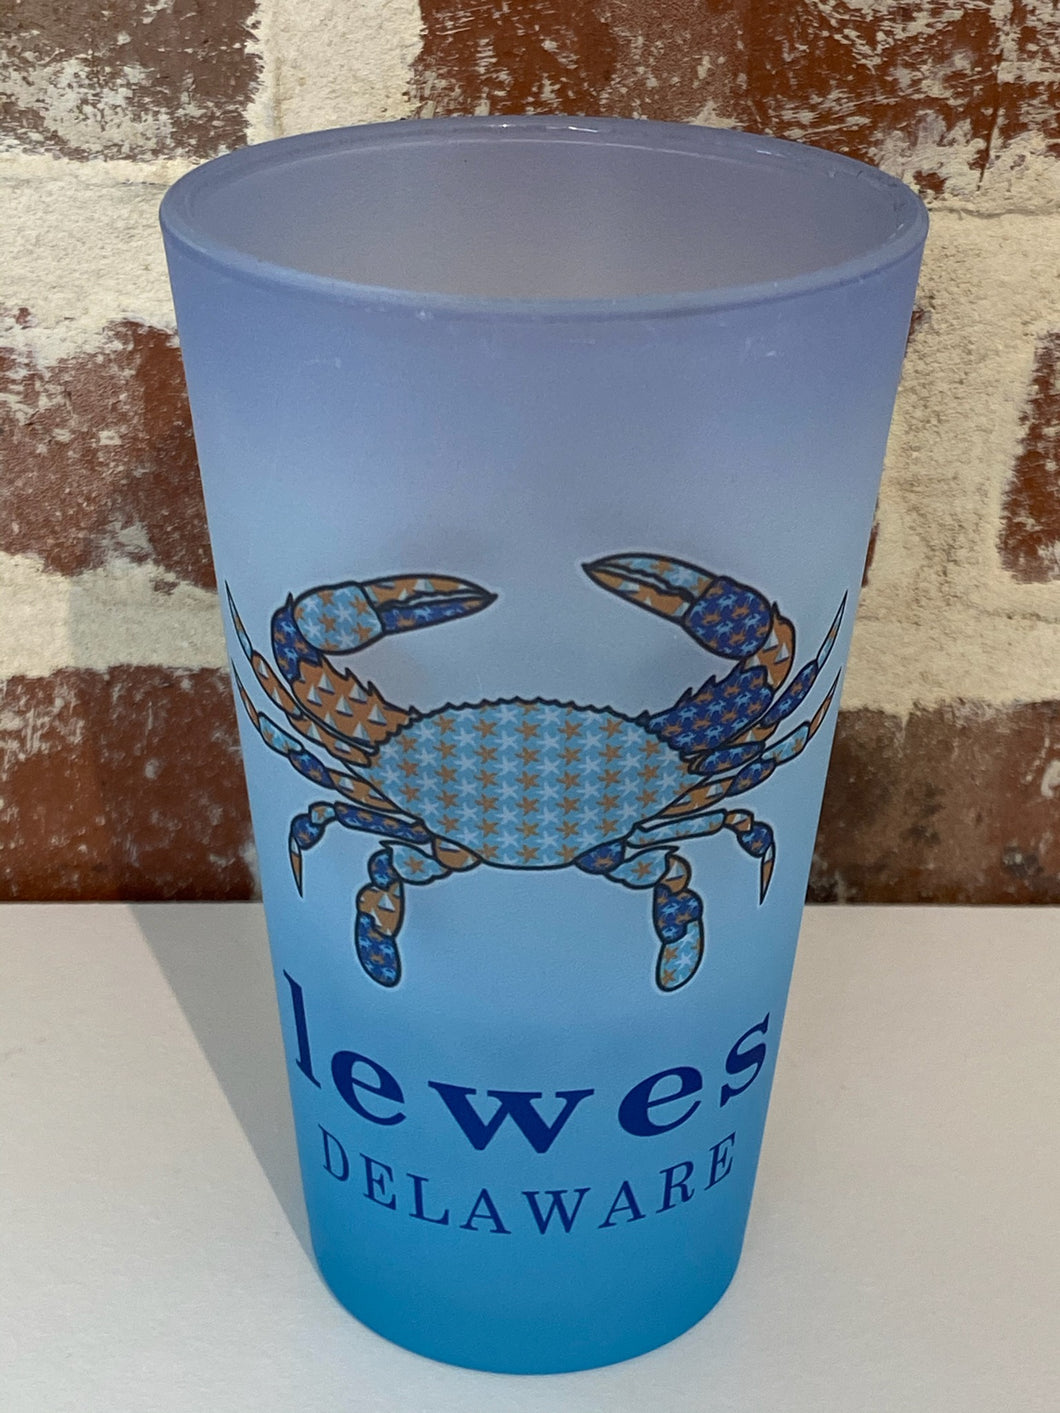 BLUE CRAB LEWES PINT GLASS